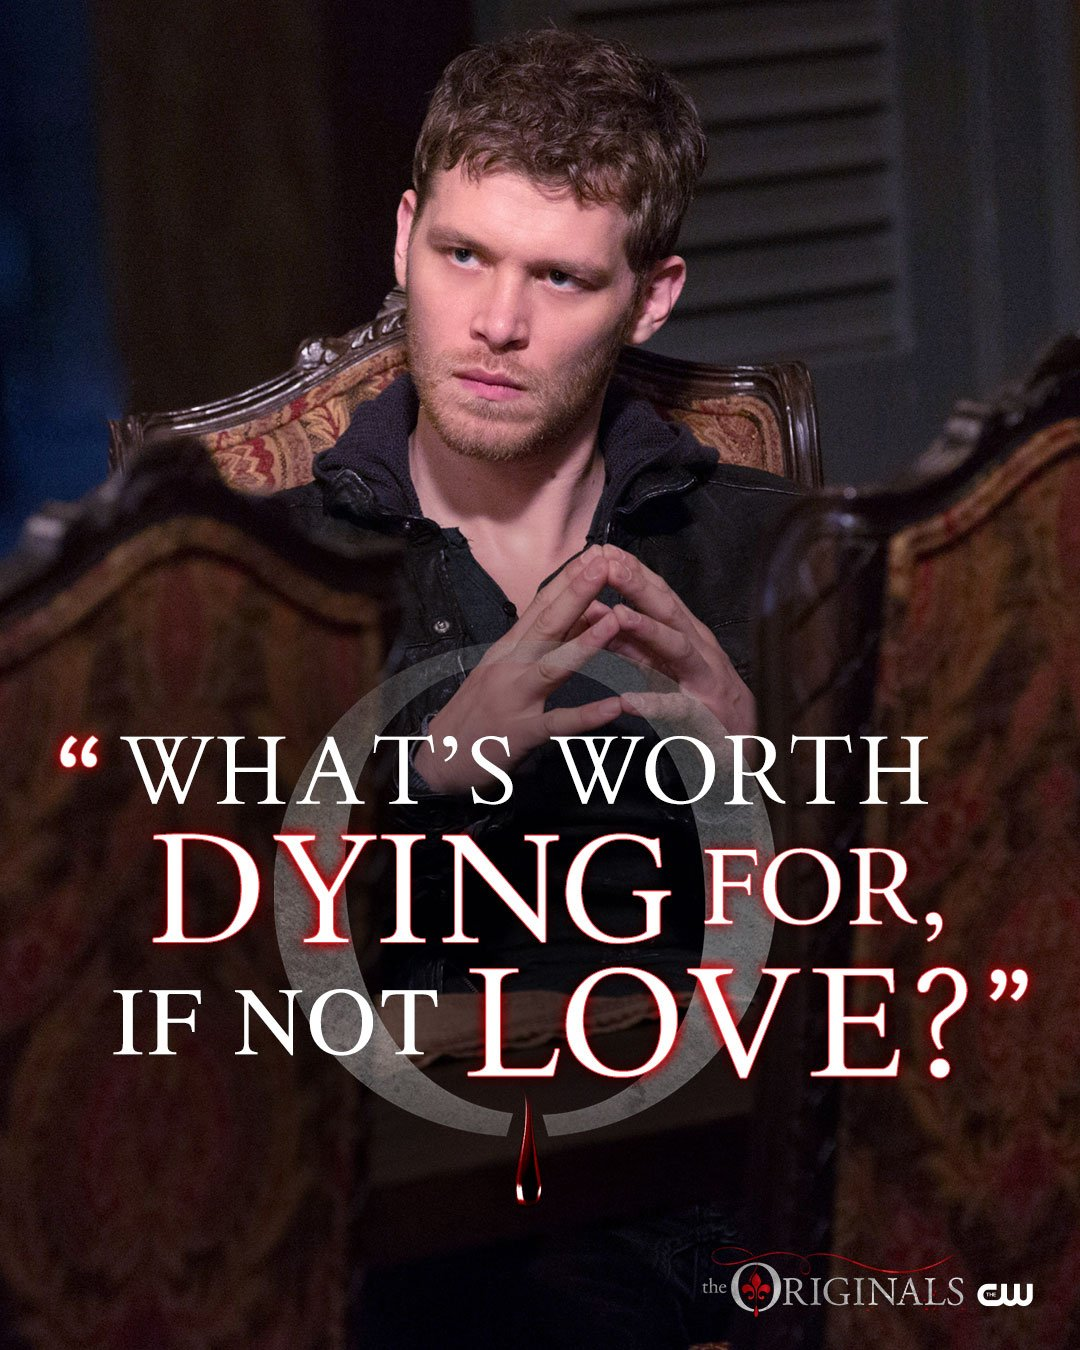 Wise words from Klaus. The final season begins Wednesday at 9/8c on The CW! #TheOriginals https://t.co/afsXnfbBEV